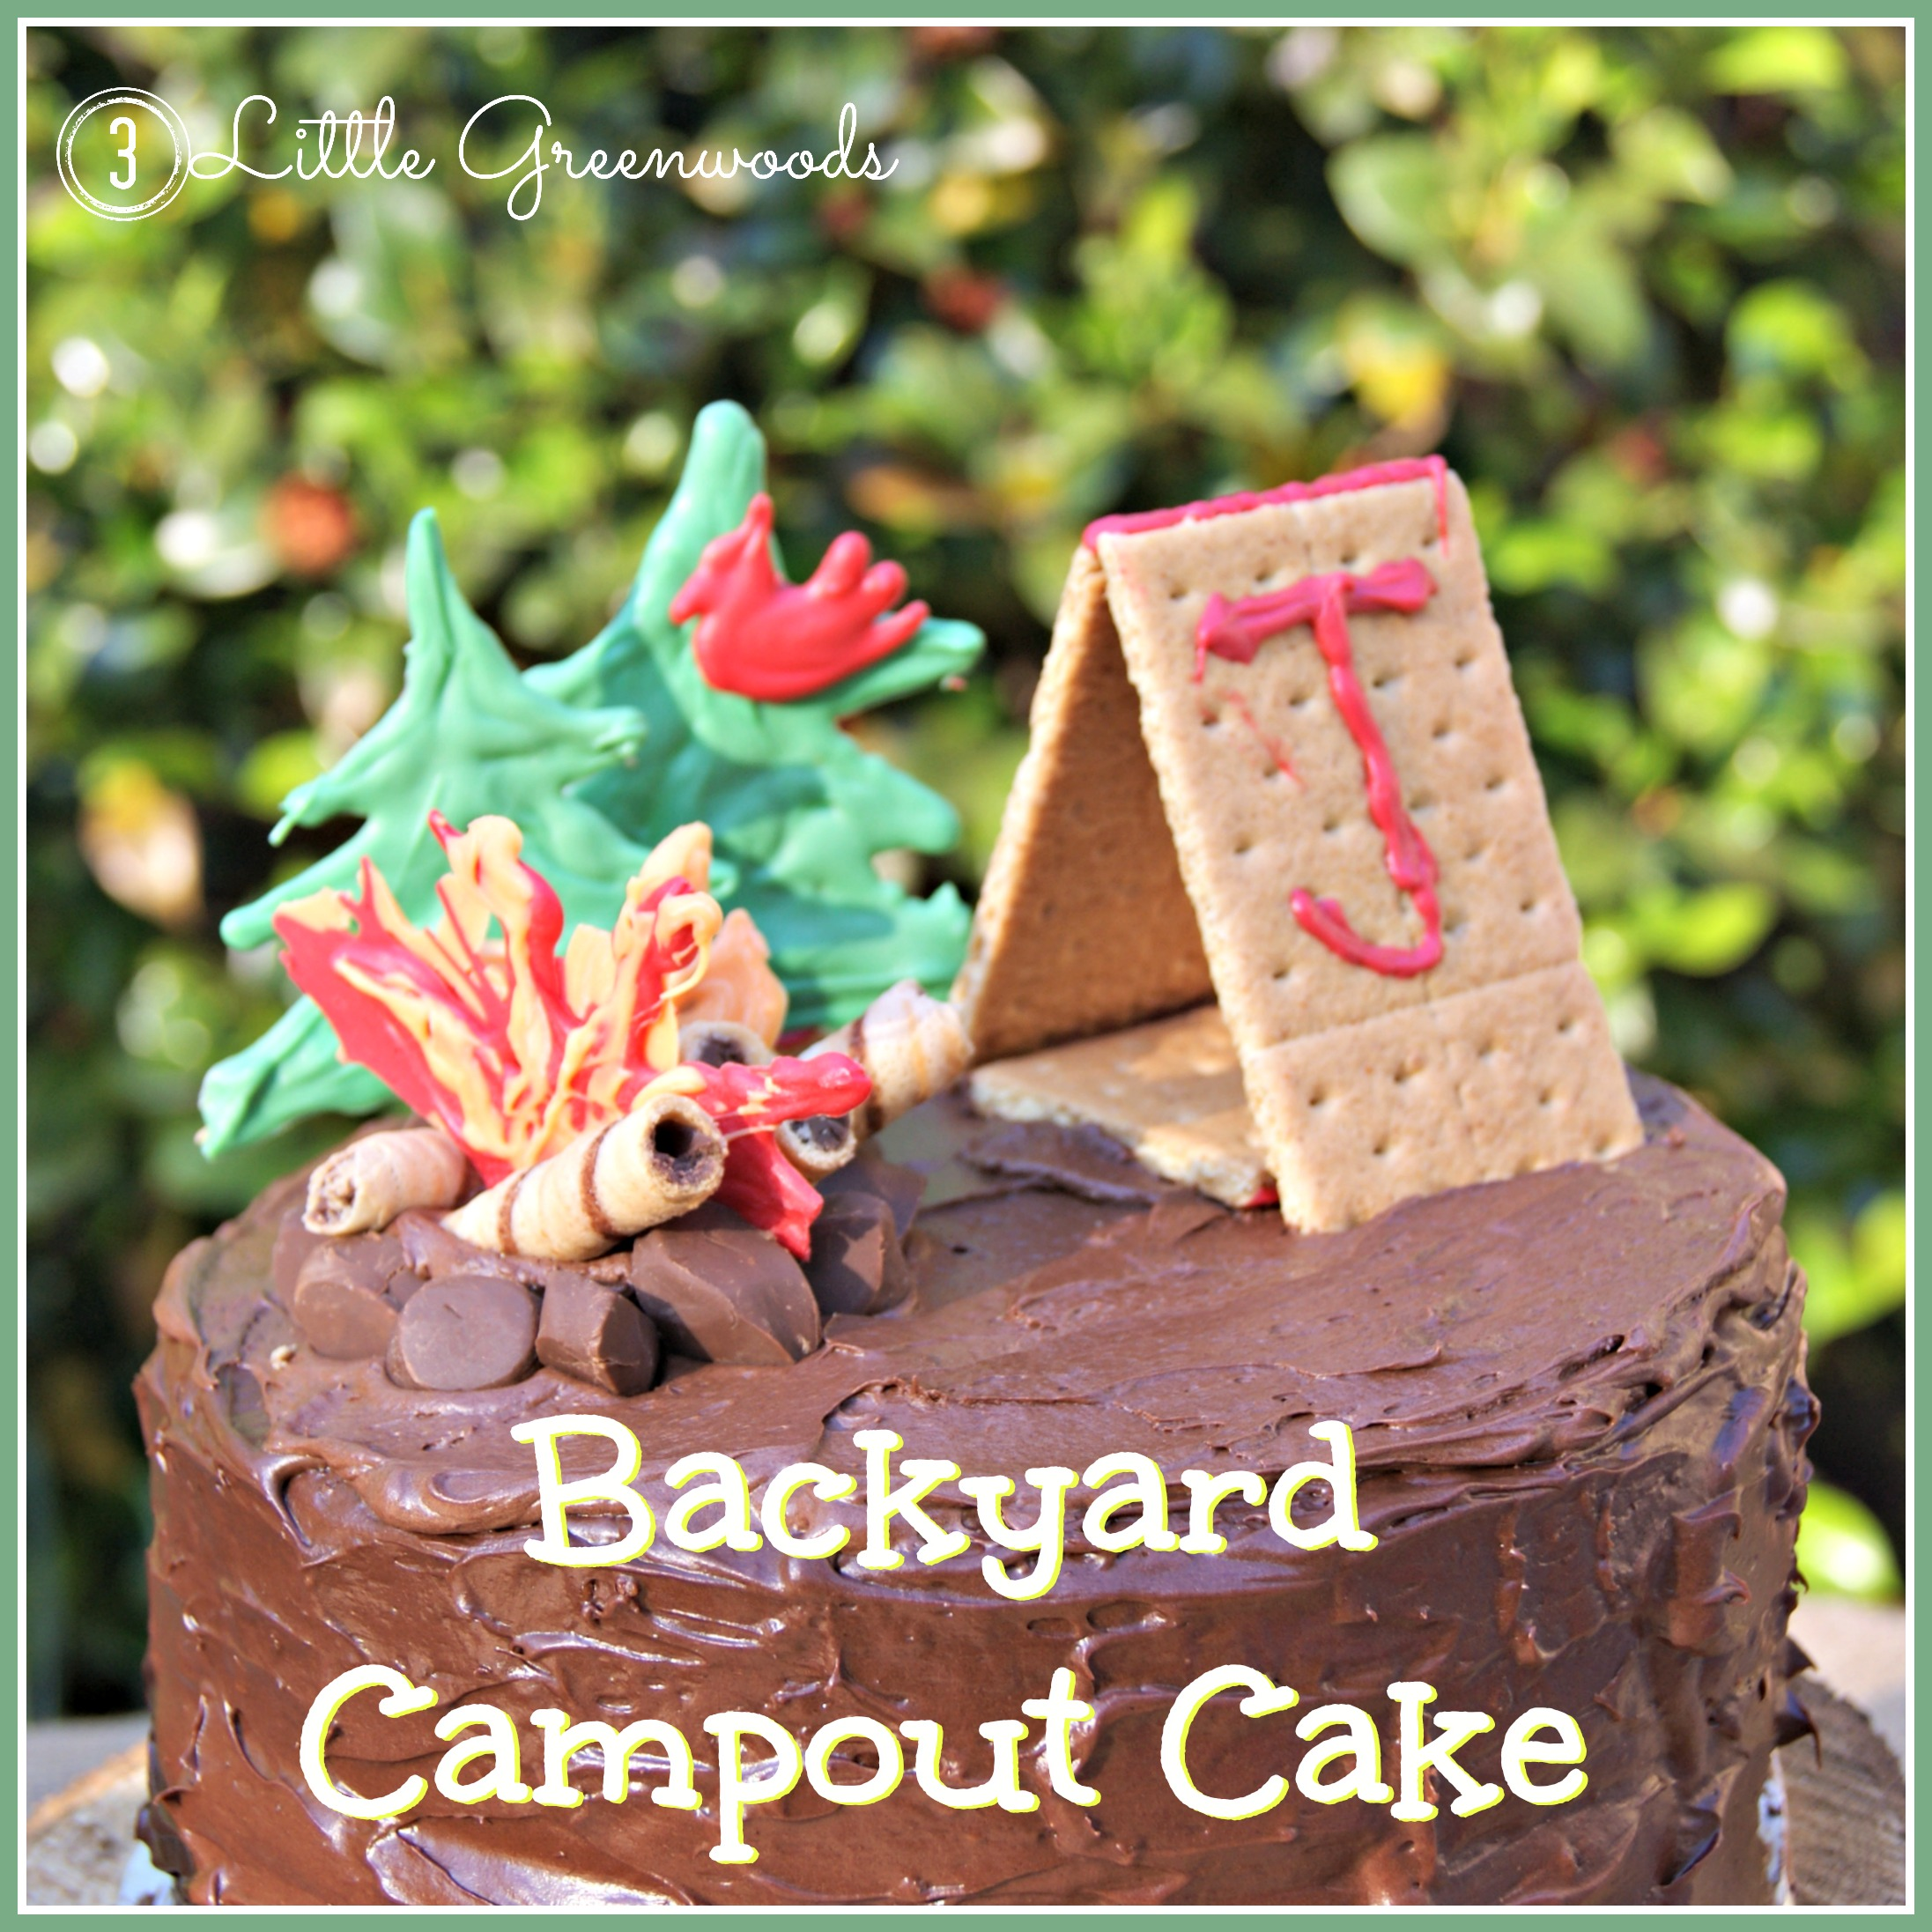 Sensational Backyard Campout Birthday Cake 3 Little Greenwoods Personalised Birthday Cards Cominlily Jamesorg